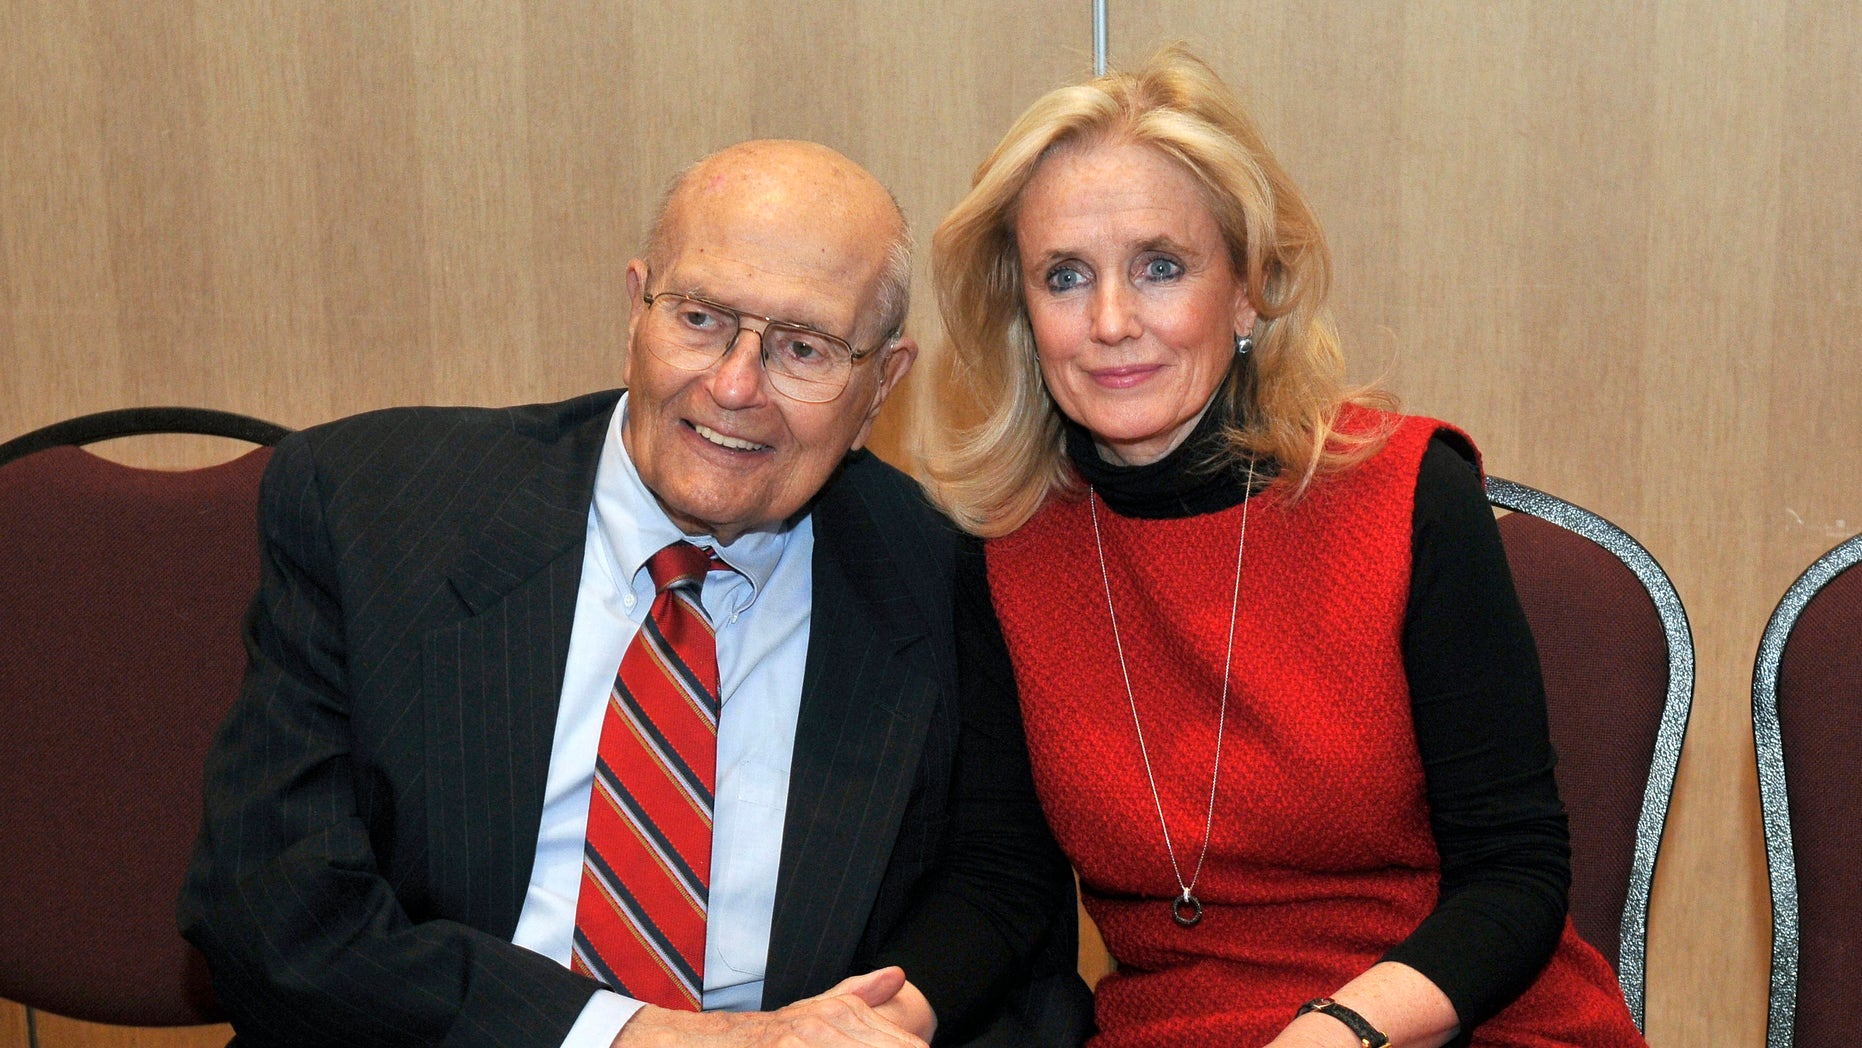 Feb. 24, 2014: U.S. Rep. John Dingell, left, and his wife Debbie hold hands during a legislative forum at the Southern Wayne County Regional Chamber (SWCRC) at the Crystal Gardens in Southgate, Mich.